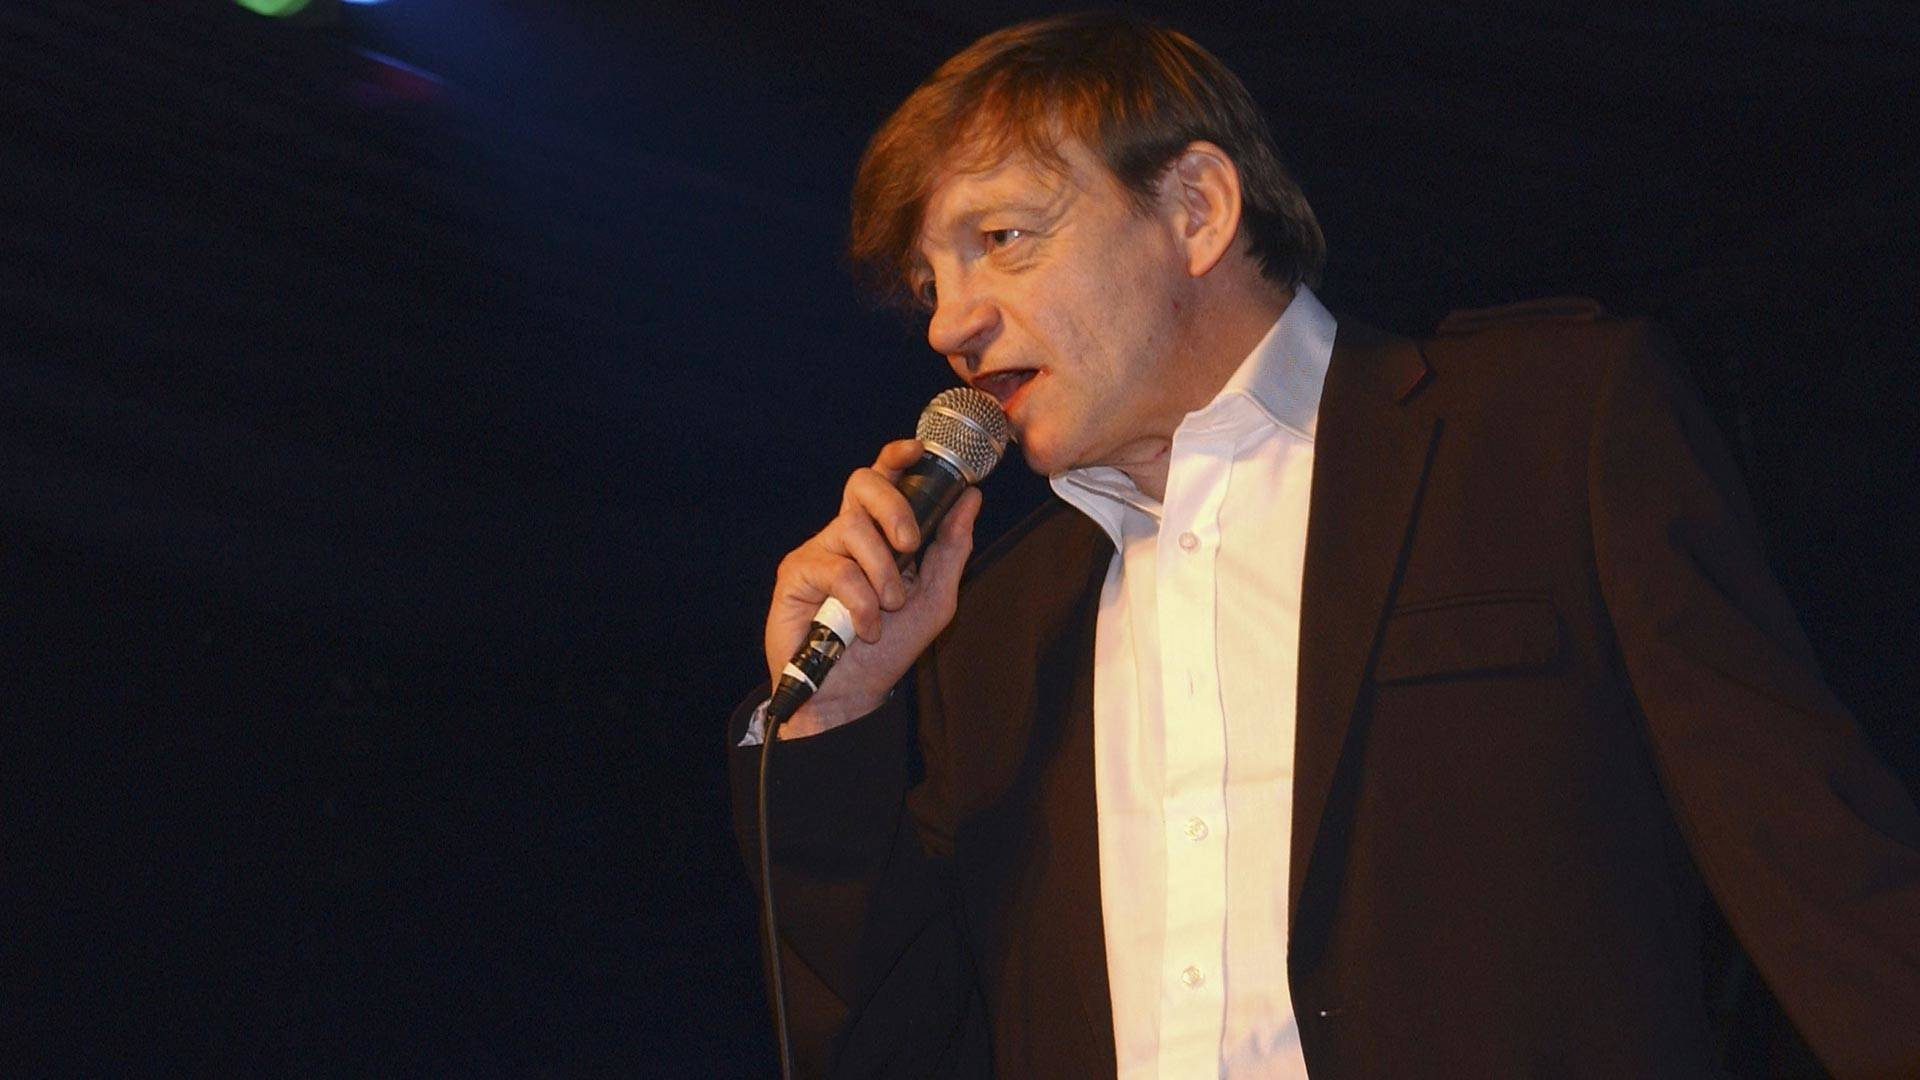 Mark E. Smith of The Fall performs at the Hammersmith Palais on April 1, 2007 in London. This was the last scheduled concert at the historic West London venue, immortalized by The Clash song 'White Man In Hammersmith Palais.' Jim Dyson/Getty Images